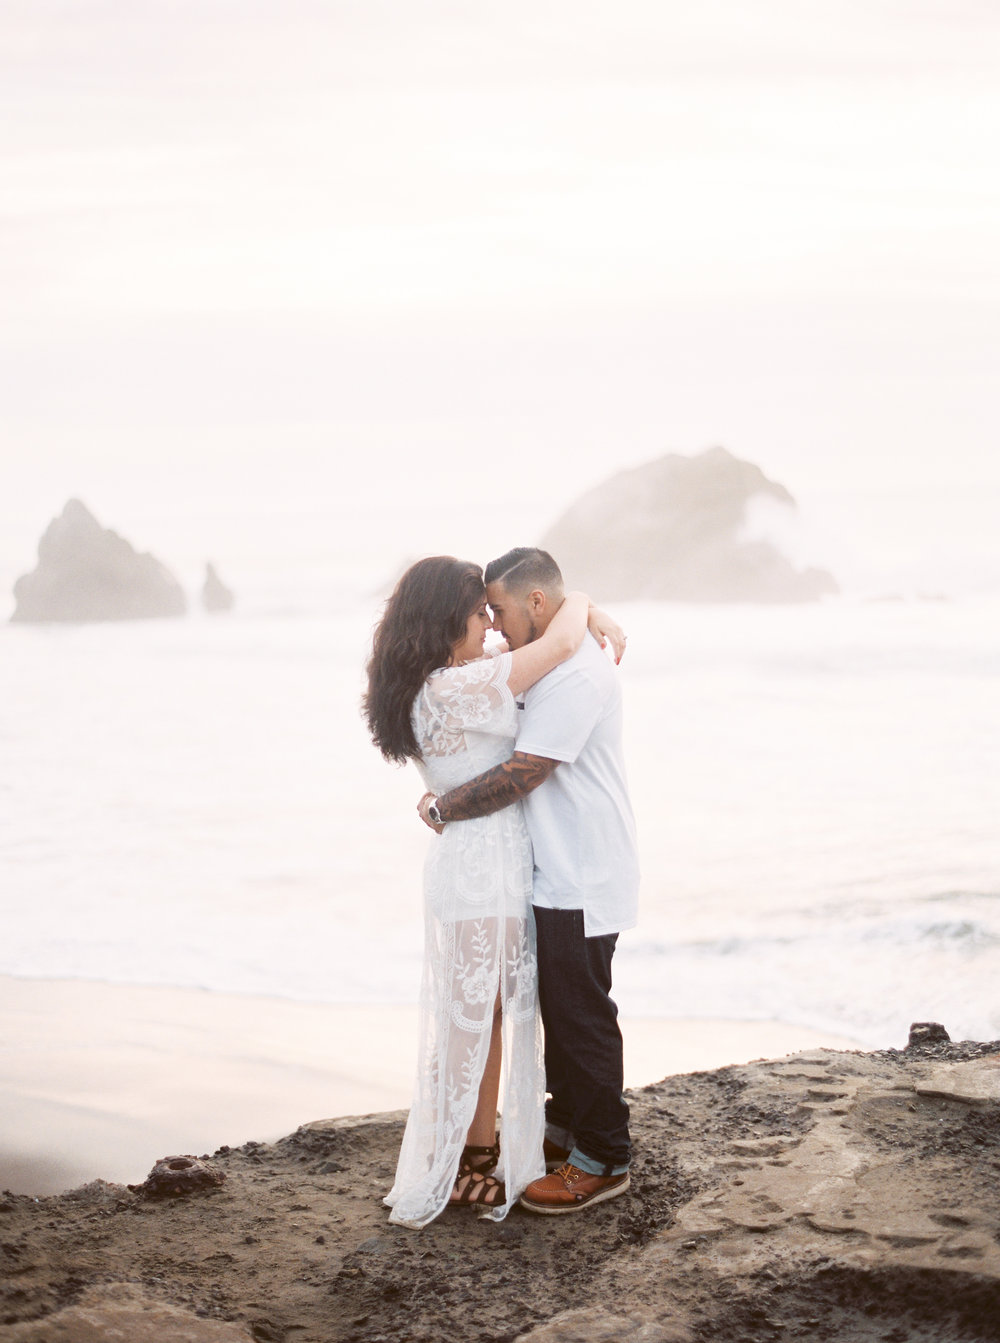 Sutro-baths-san-francisco-engagement-49.jpg